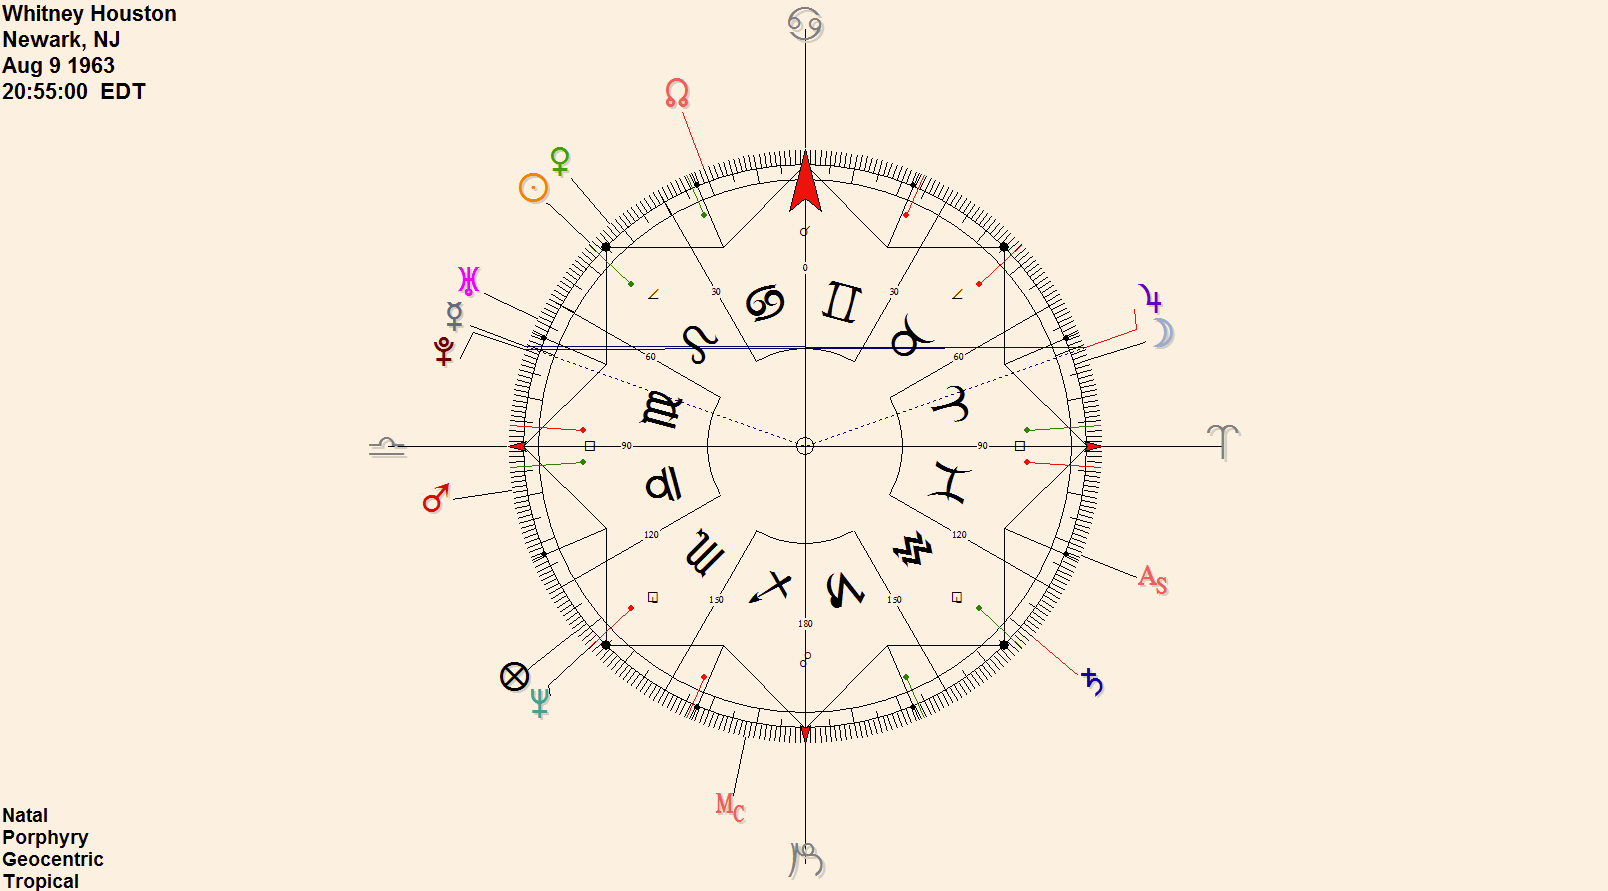 Urania designs blog in whitney houstons chart mercury sits at 1015 virgo and that is the exact mirror or shadow point antiscia to jupiter placed at 1929 aries nvjuhfo Choice Image